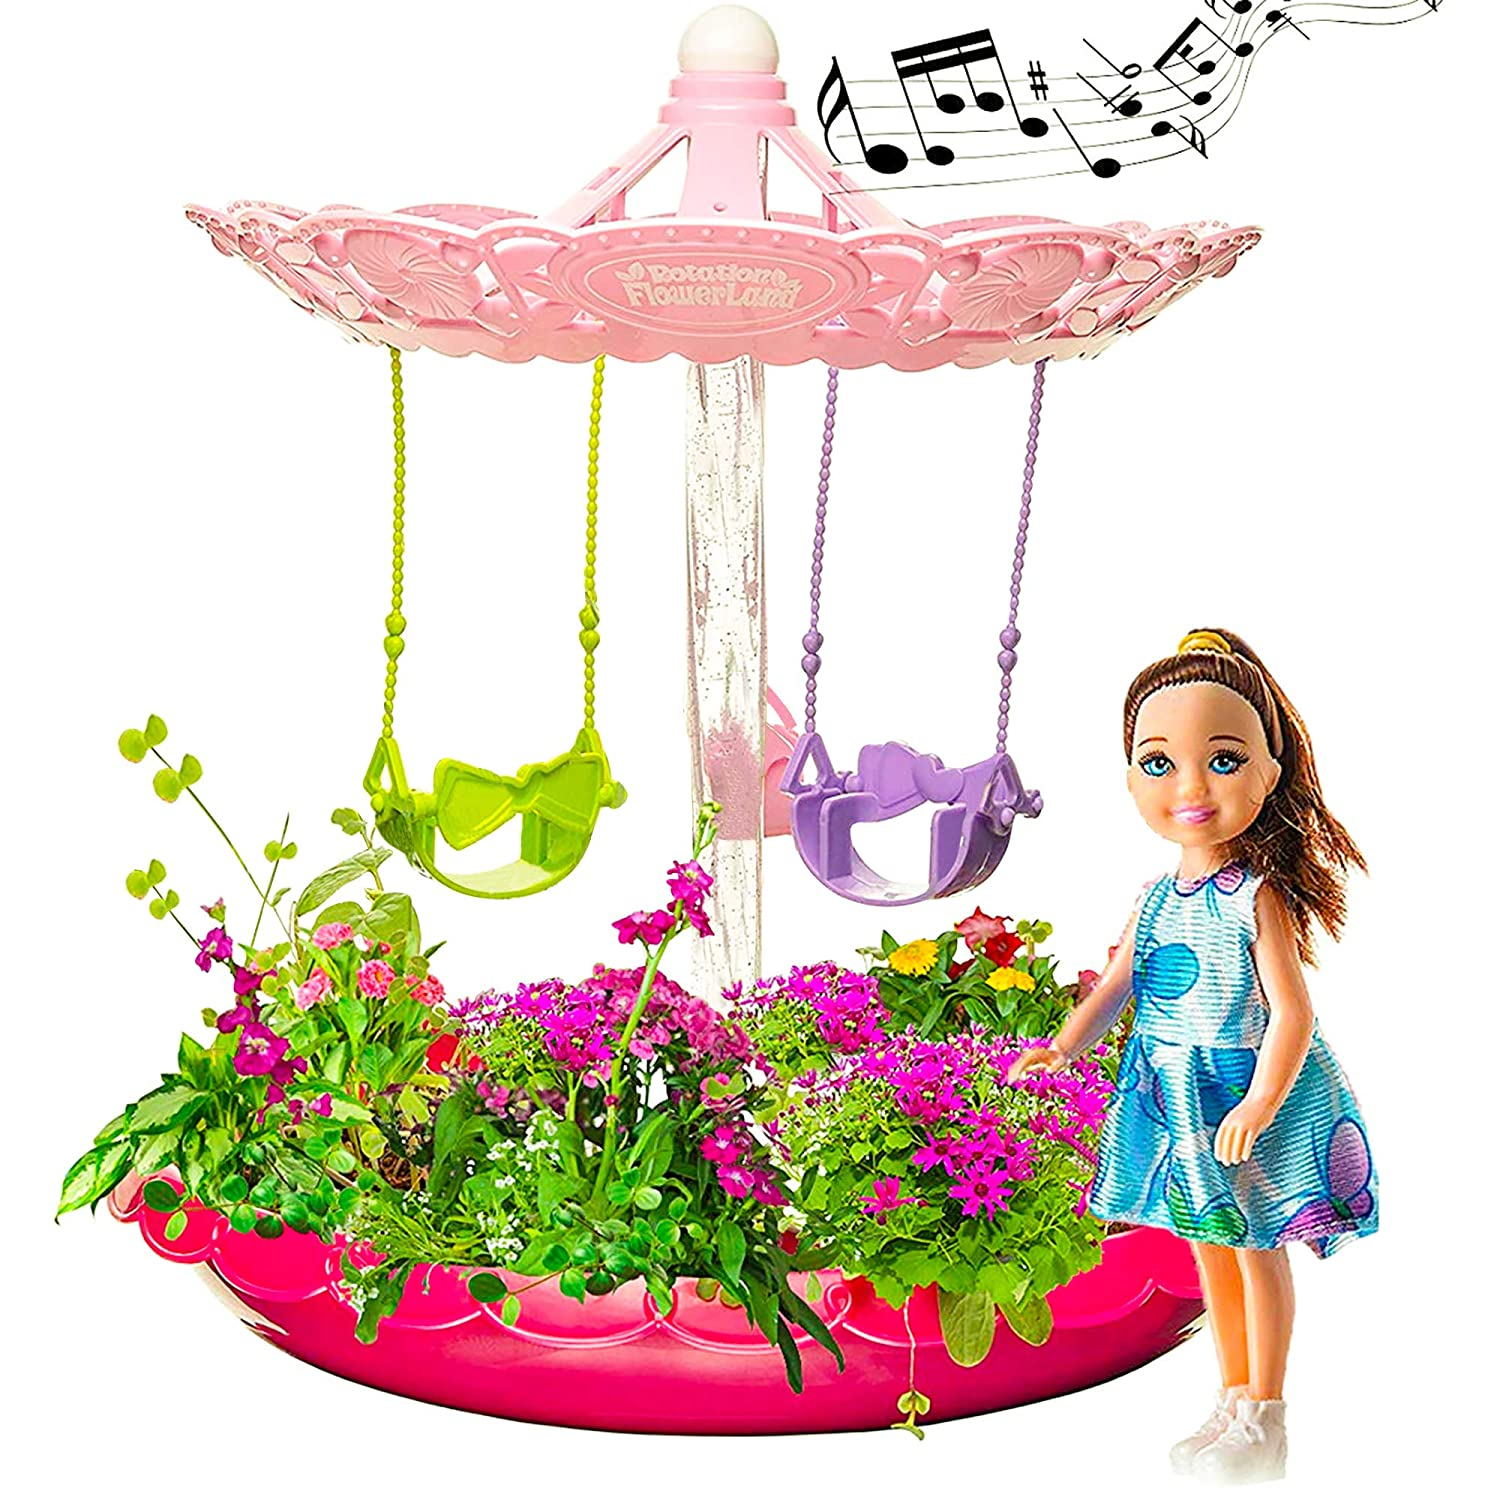 Best DIY Gift for 3-8 Years Old Gardening Kit with Lights /& Music Fairy Garden Kit for Girls with Fairies Pink with Fairies Complete Garden Starter Kit Craft /& Grow Your Own Garden Indoor